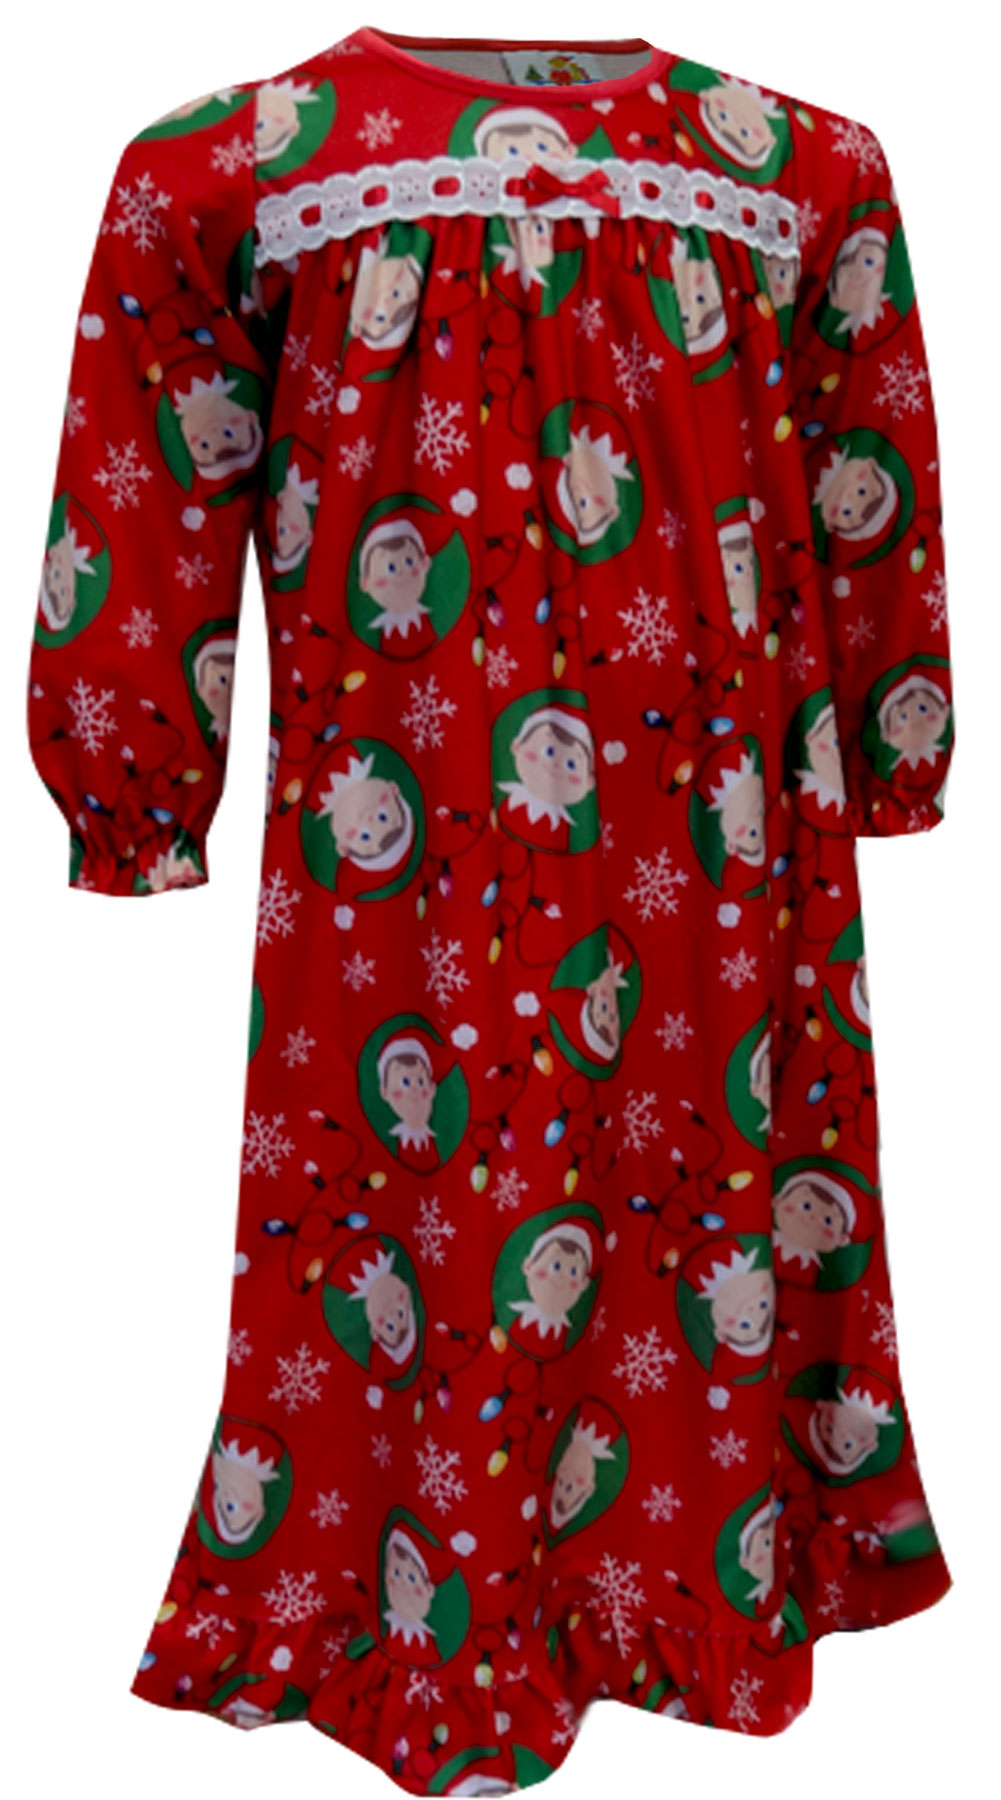 Image of Christmas is Coming Elf on the Shelf Red Nightgown for girls